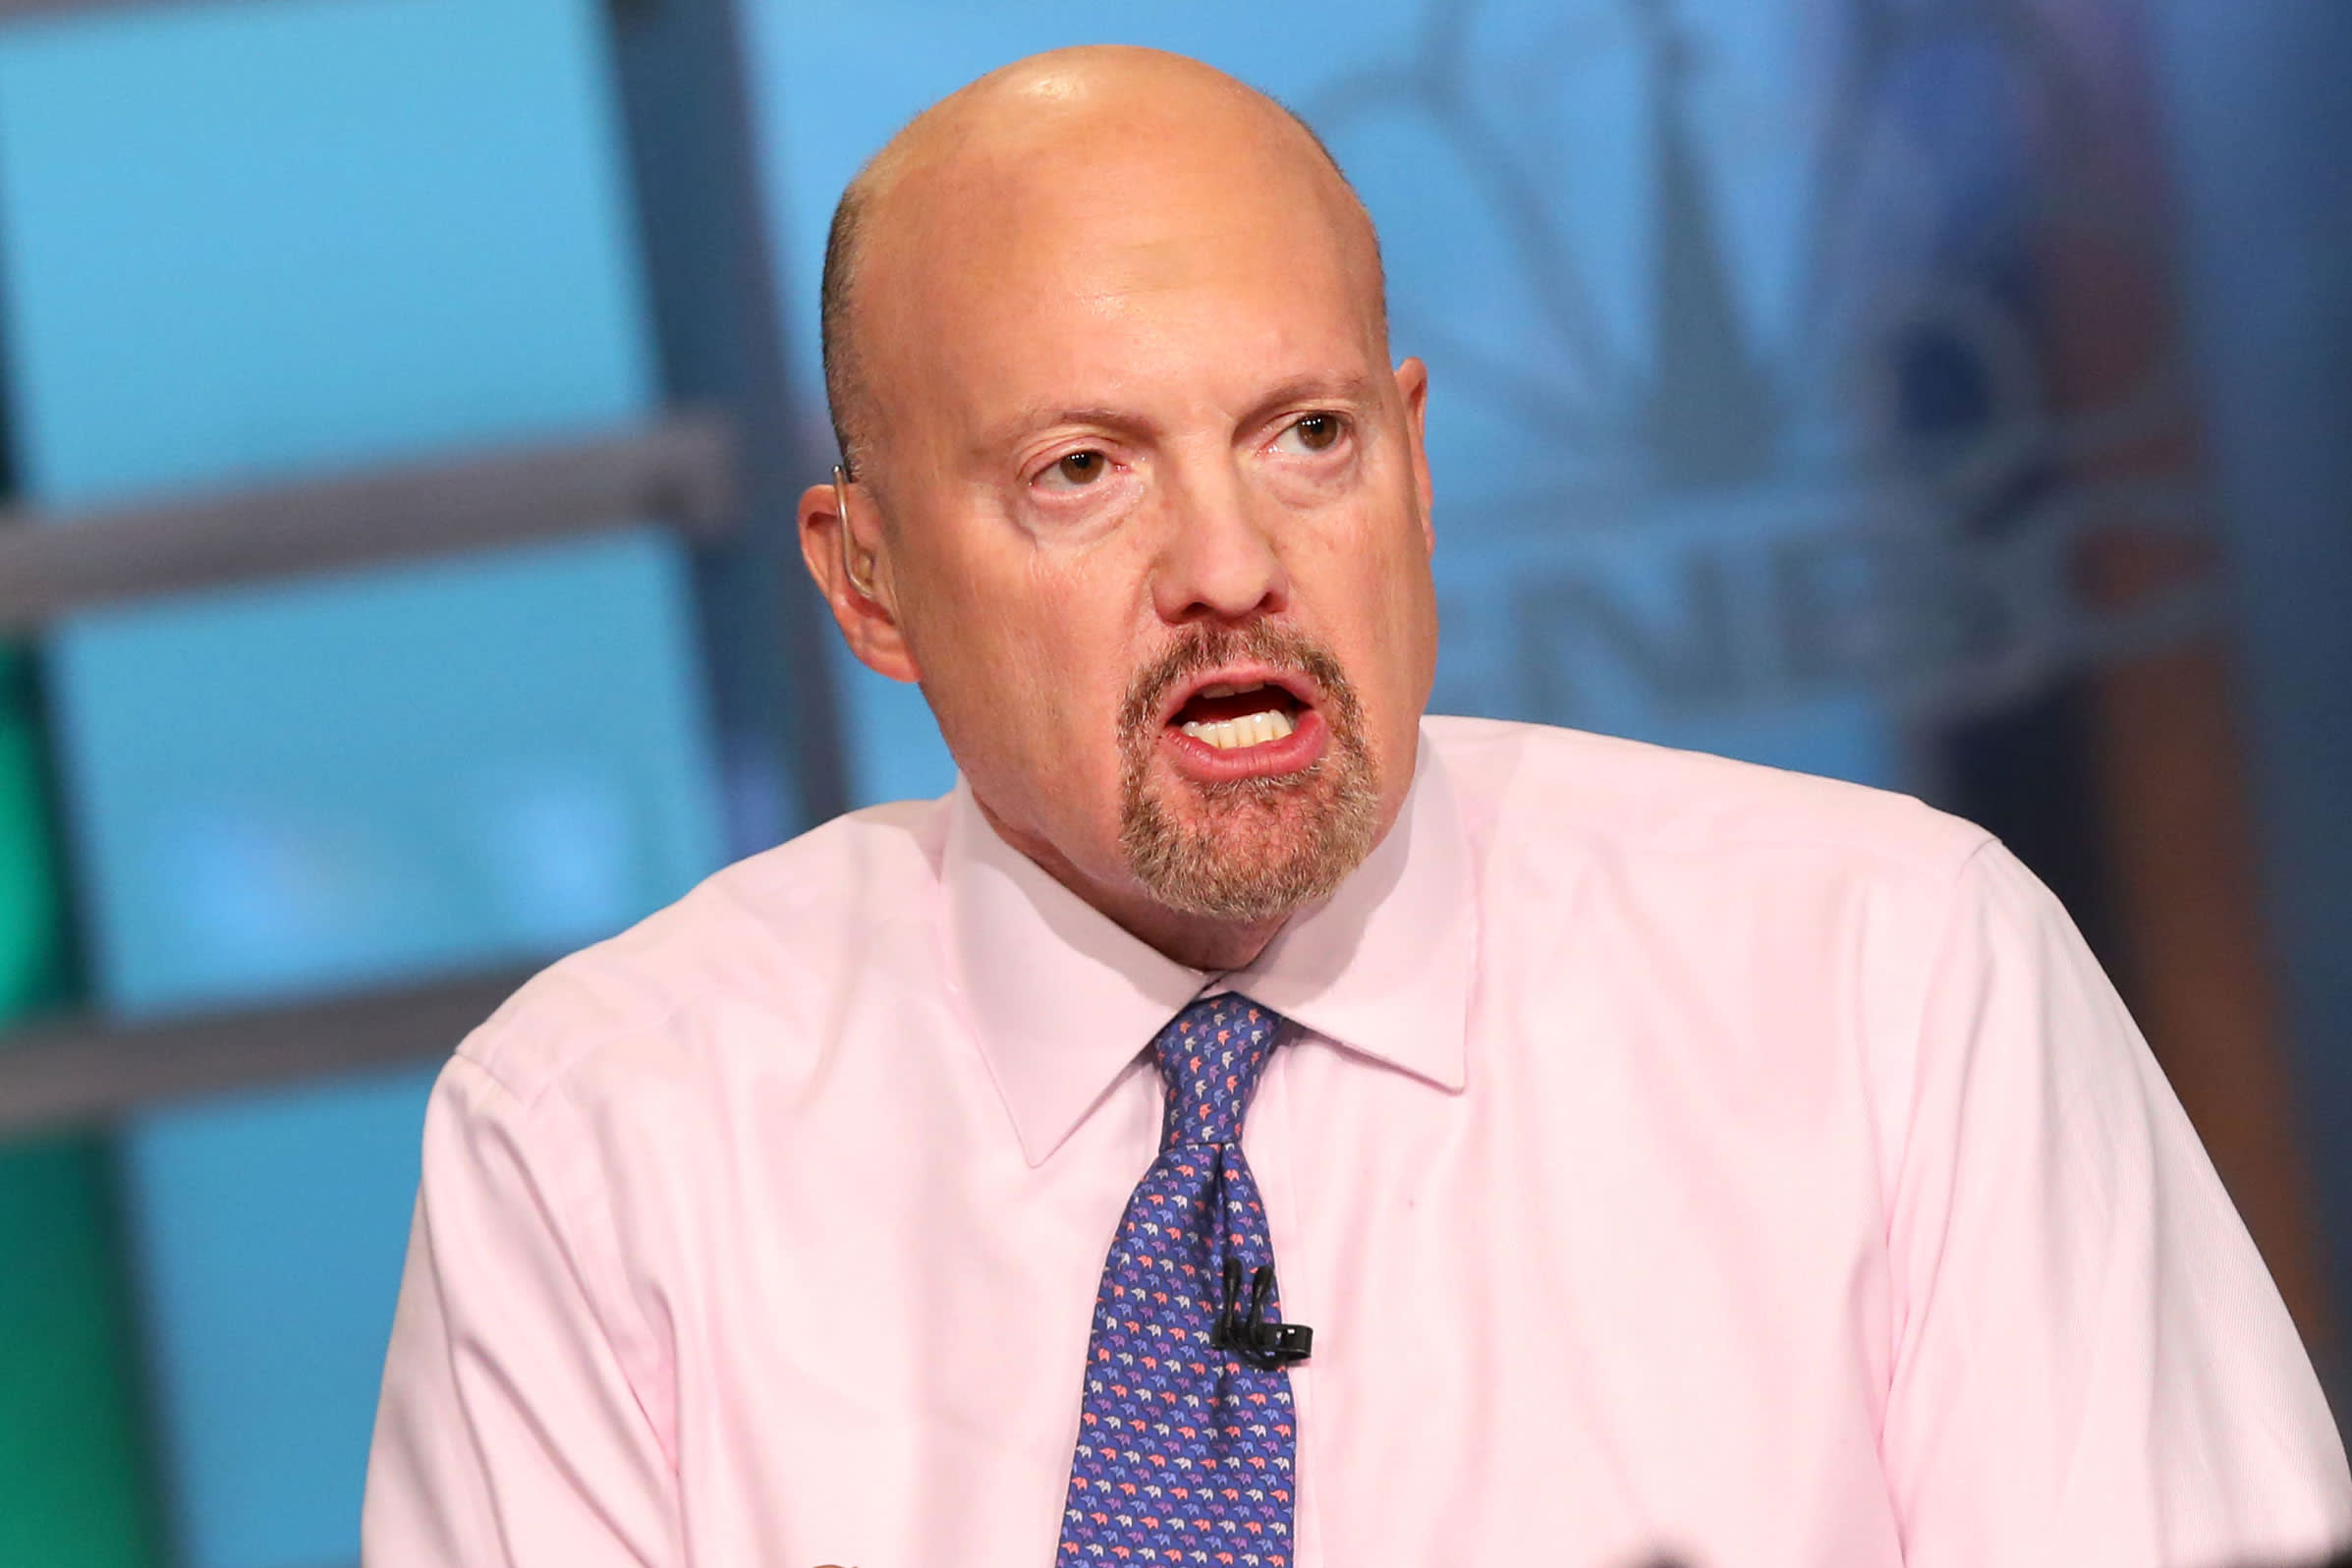 'These revelations make me sick' — Cramer suggests a billionaire surtax after ProPublica bombshell